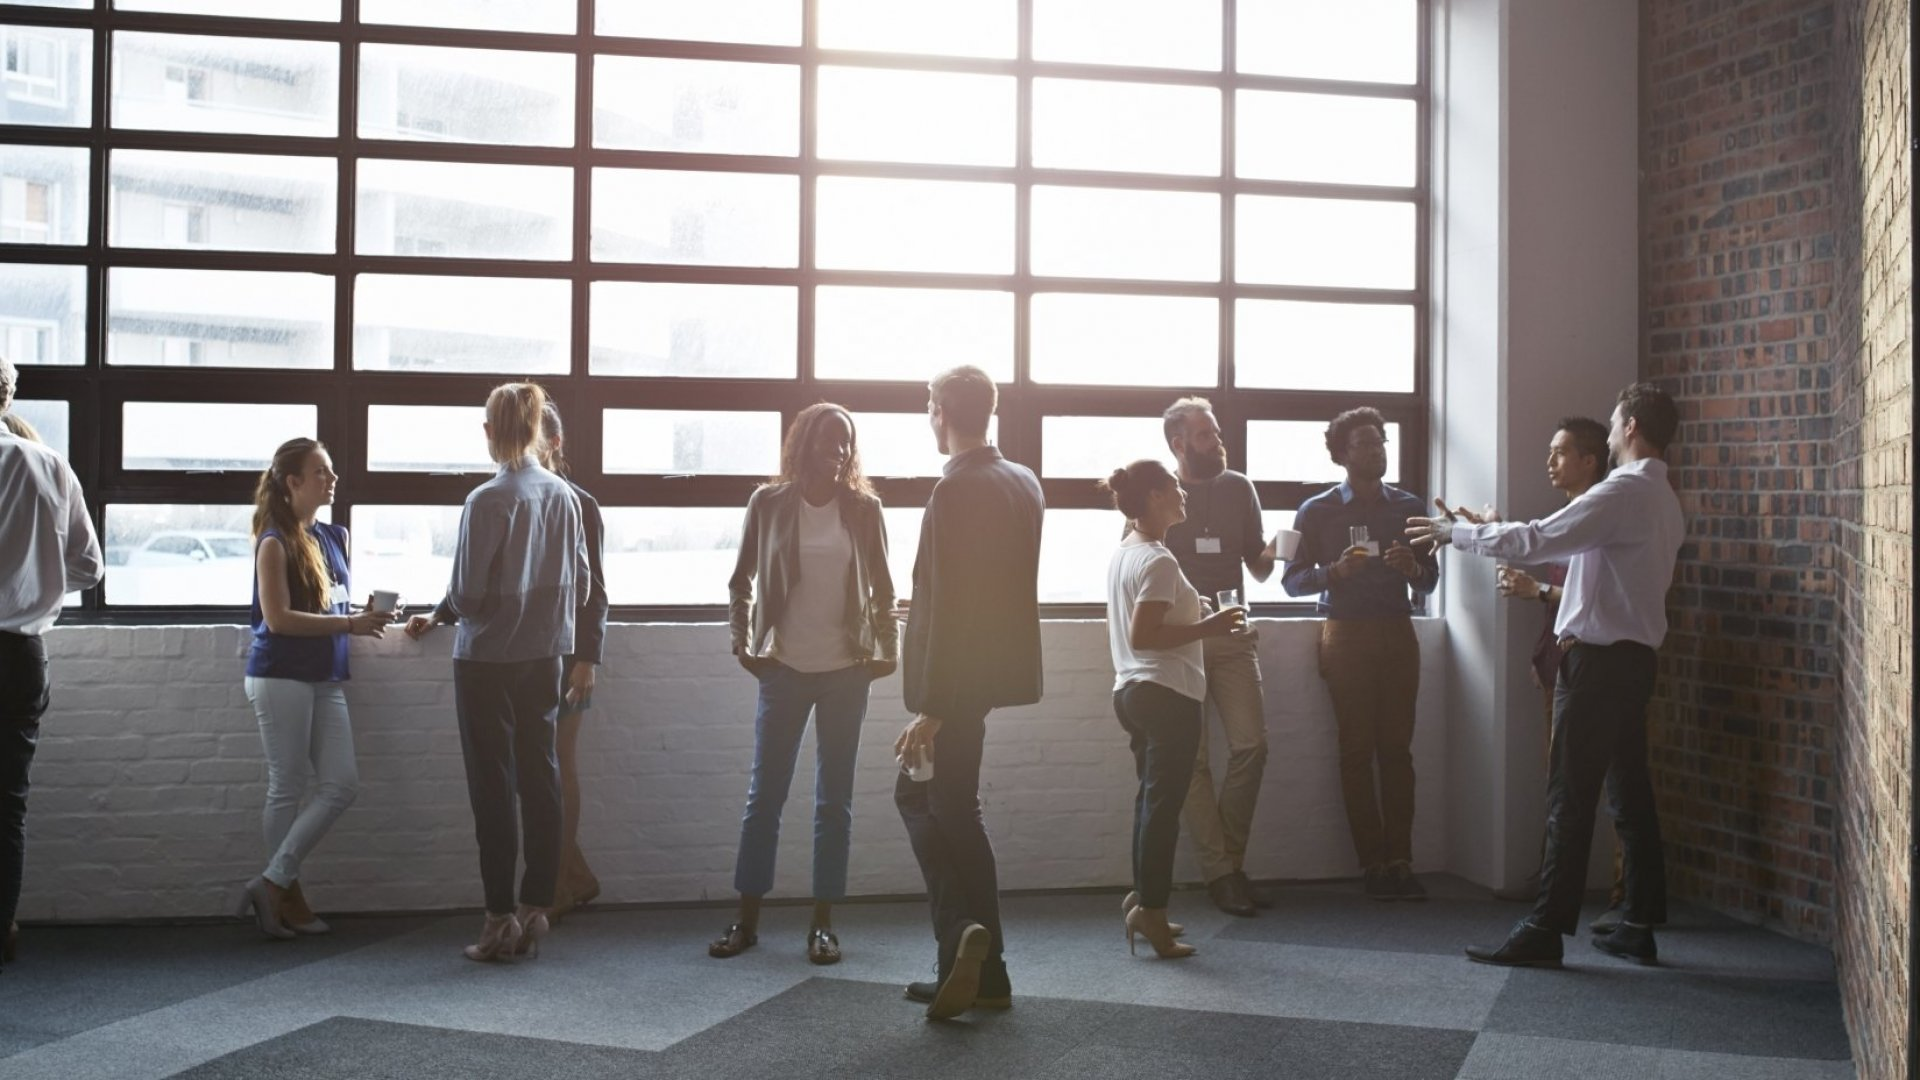 7 Best Practices for Networking That Actually Work